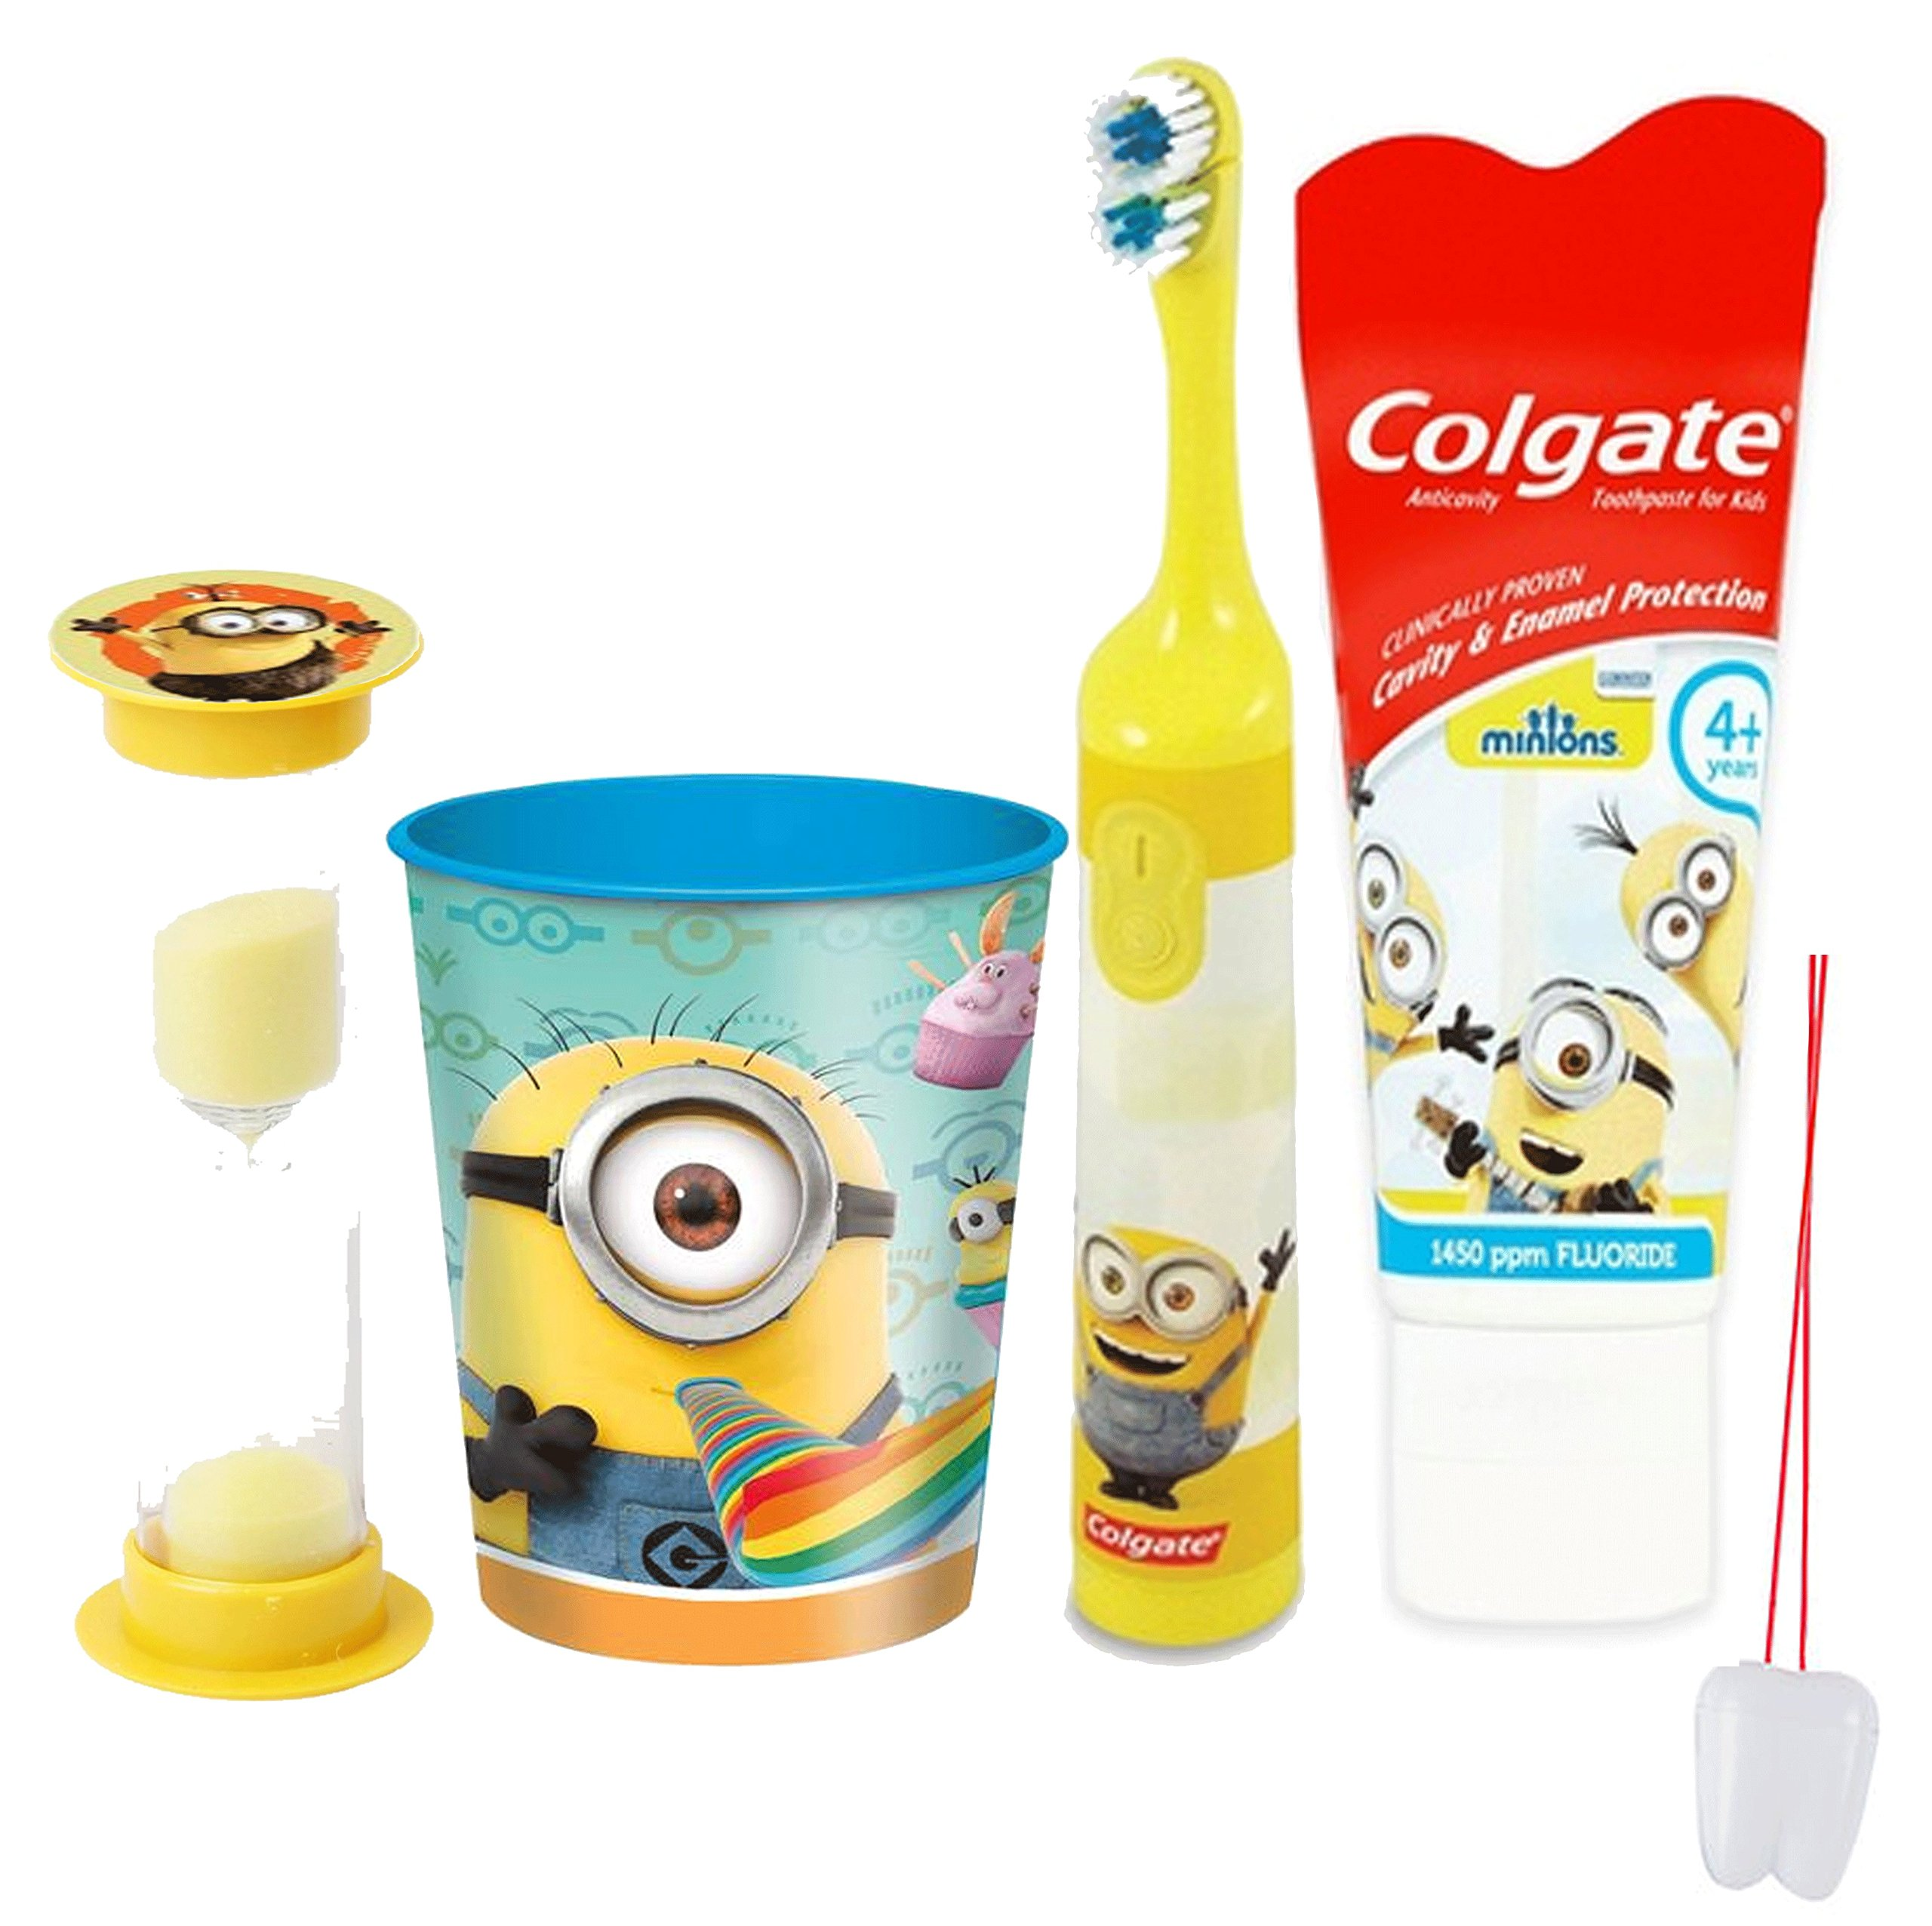 Despicable Me Minions 4pc Bright Smile Oral Hygiene Set! Spin Toothbrush, Toothpaste, Brushing Timer & Mouthwash Rinse…